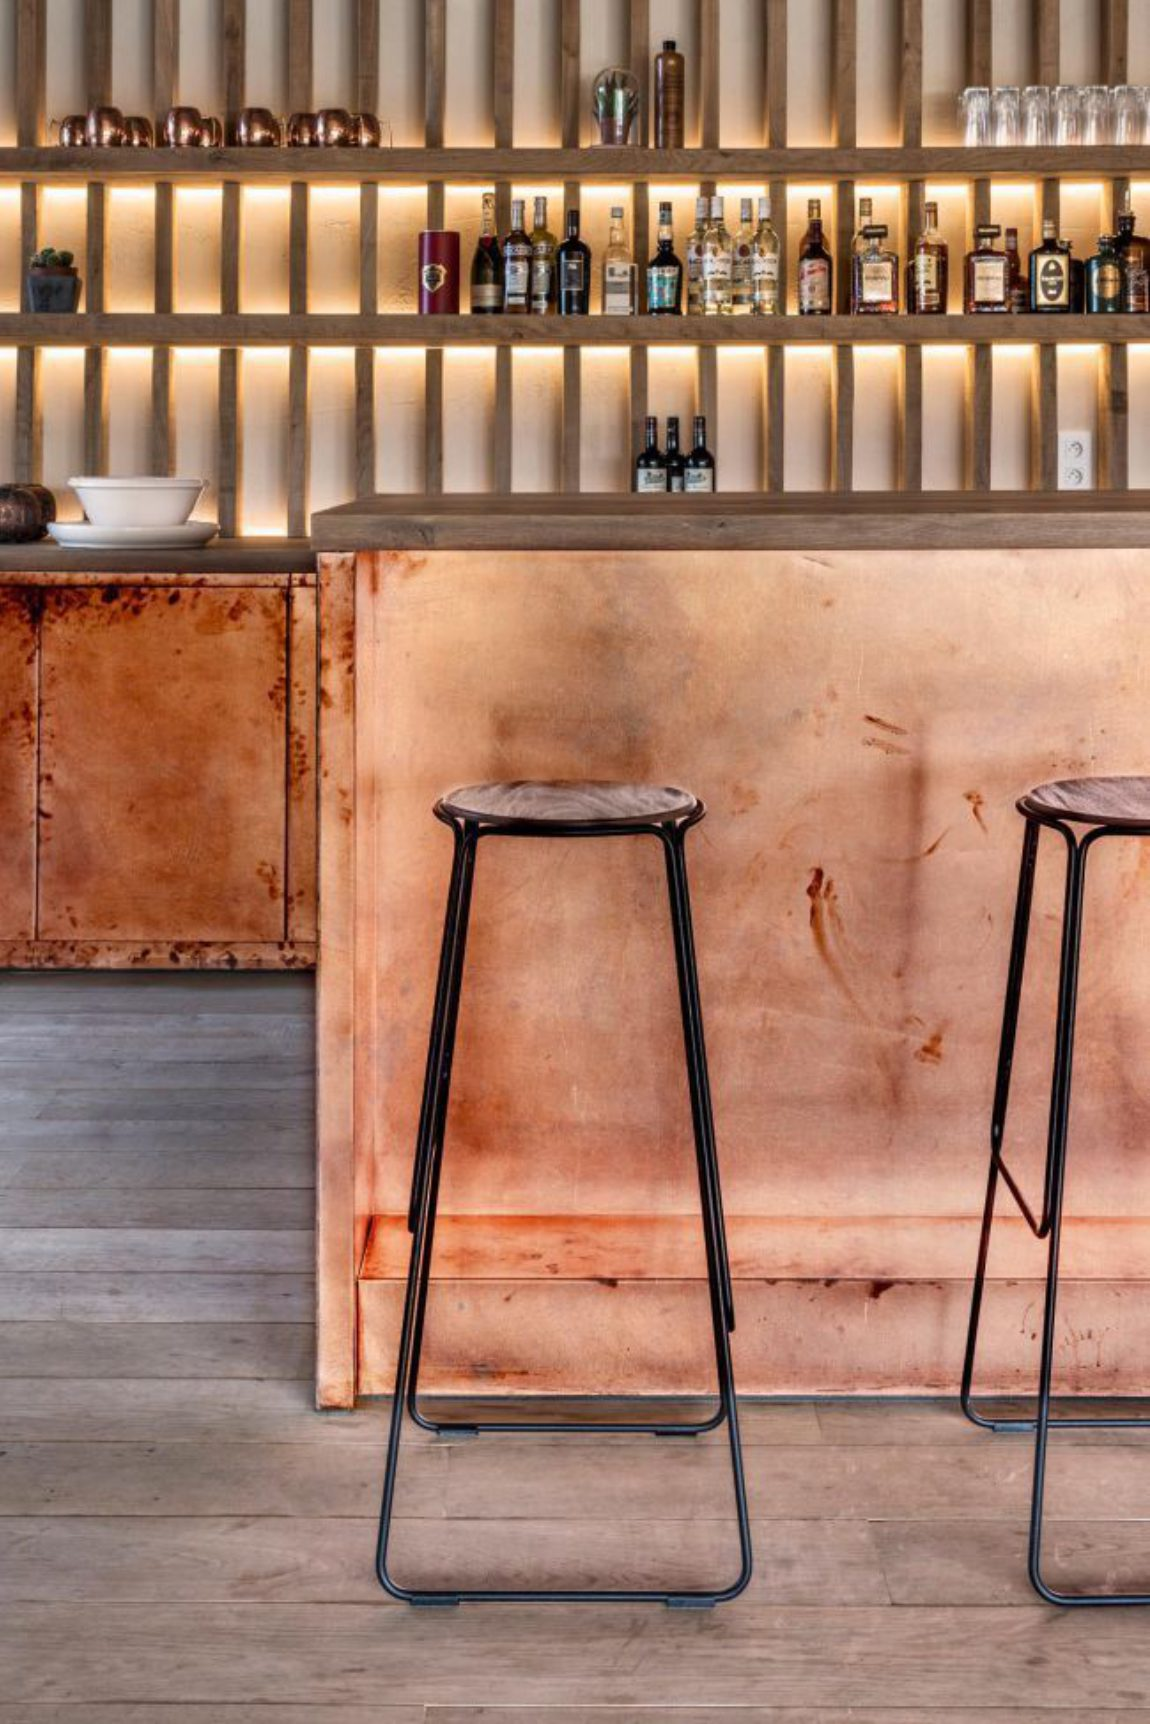 Bar koper copper kitchen patina interior design schuur barn stool light wood smoked oak gerookte eik booze bottles 6s